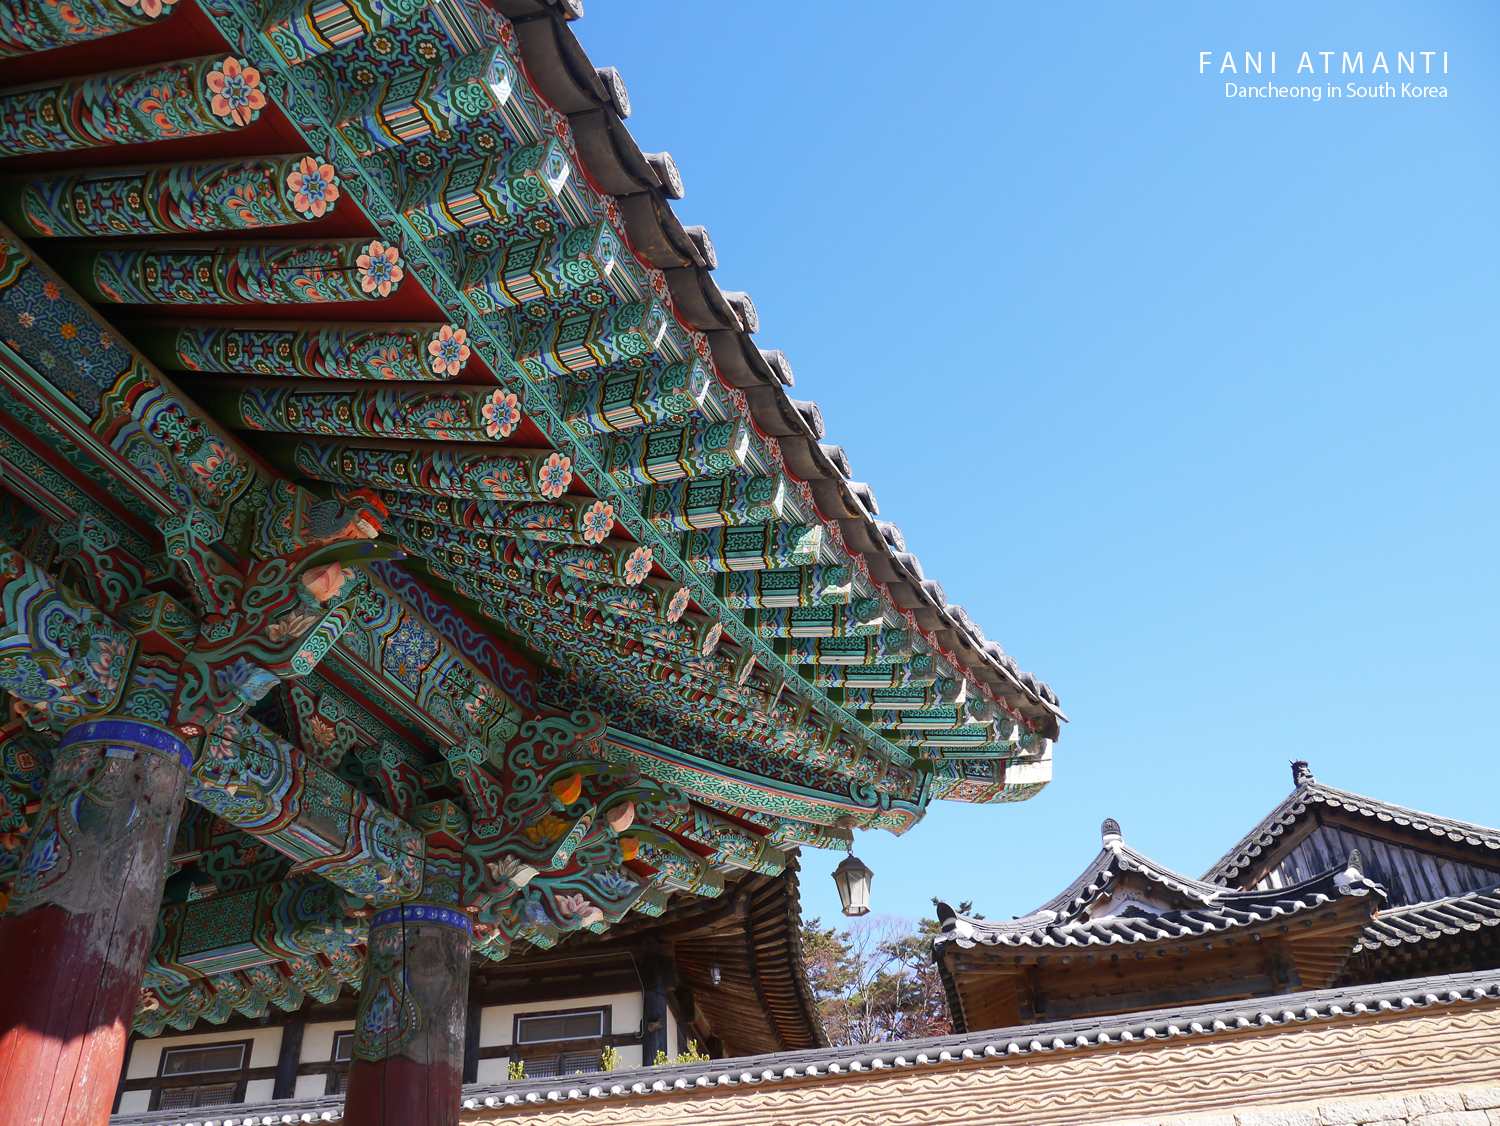 When You Visit Korean Palace Or Temple Will See The Colorful Patterns On Roof Structure This Impressed Me A Lot And I Try To Find Some